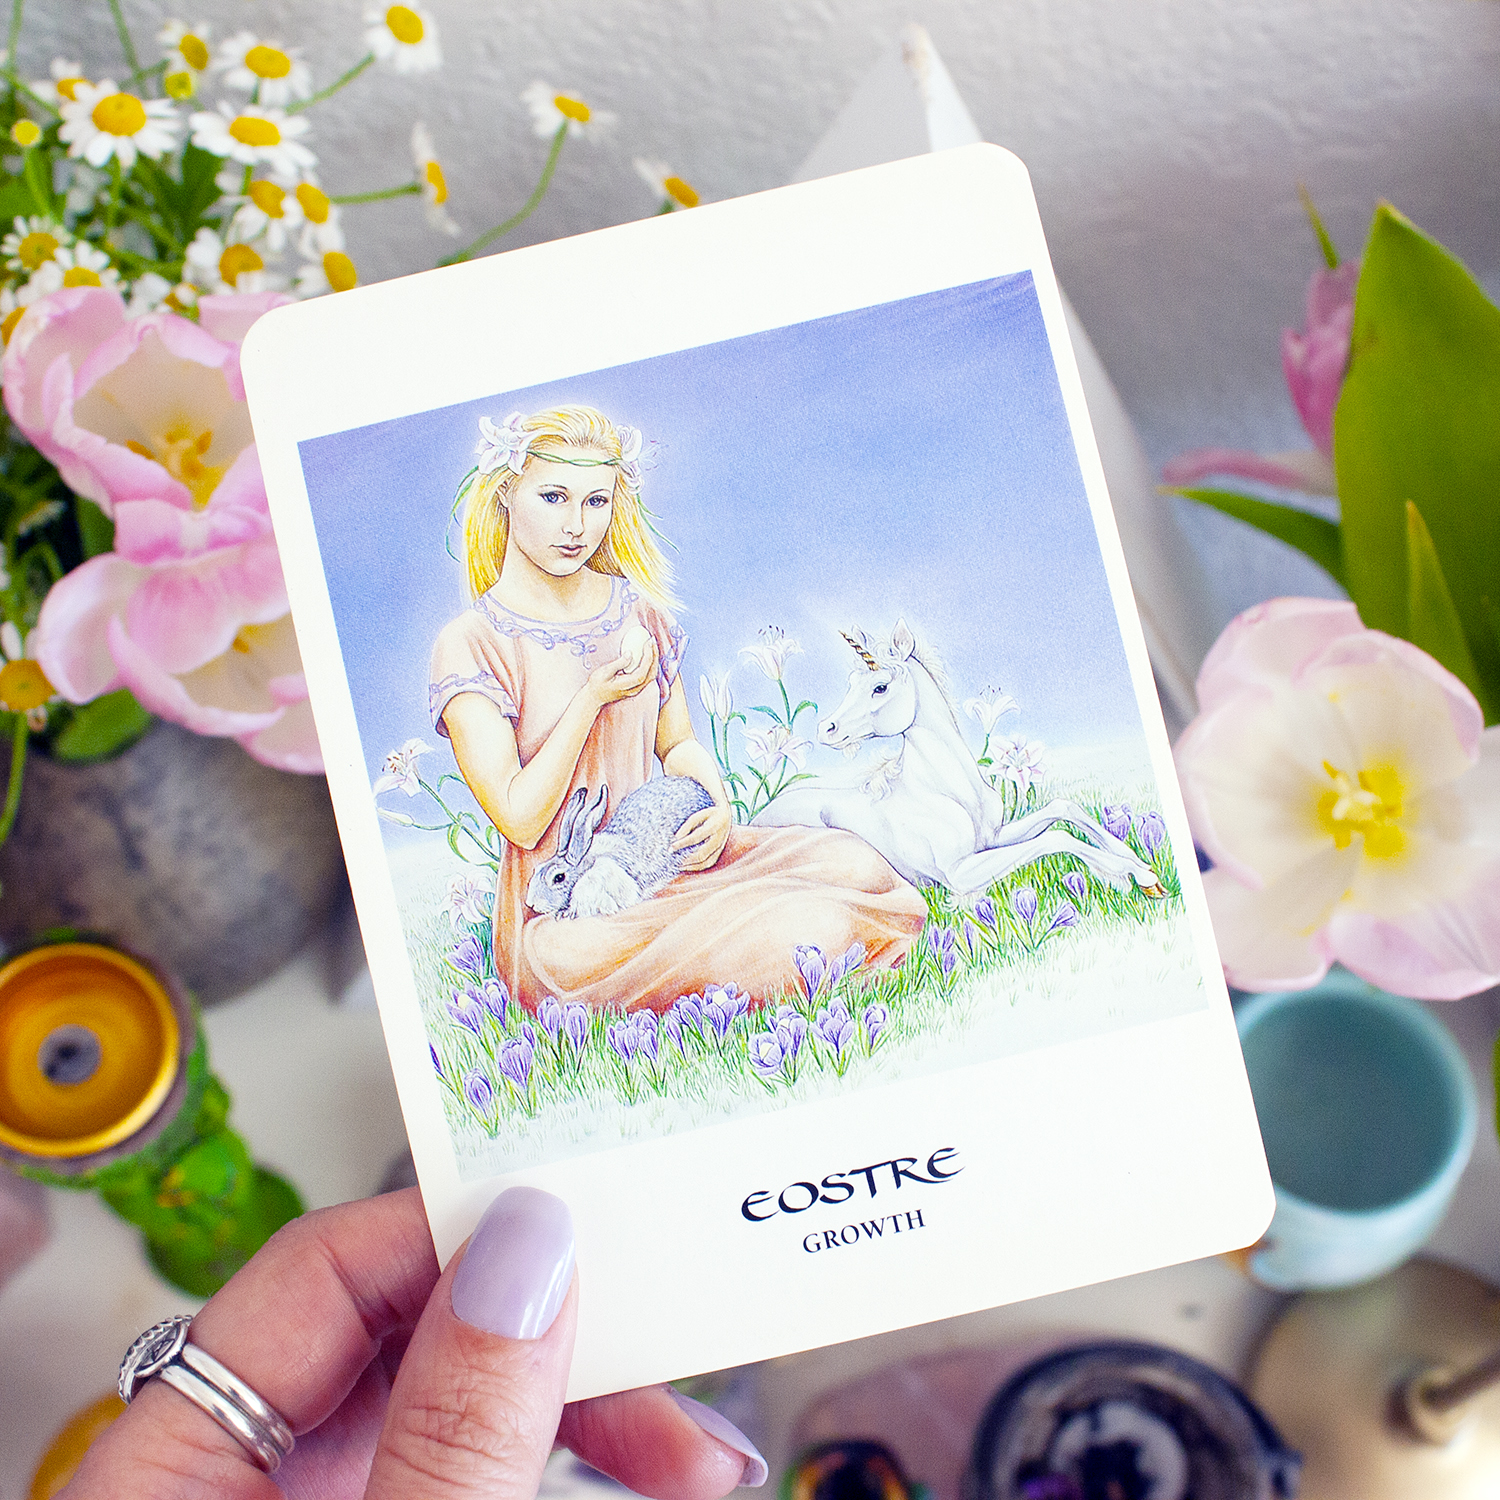 ostara egg ritual rituals for the spring equinox copy